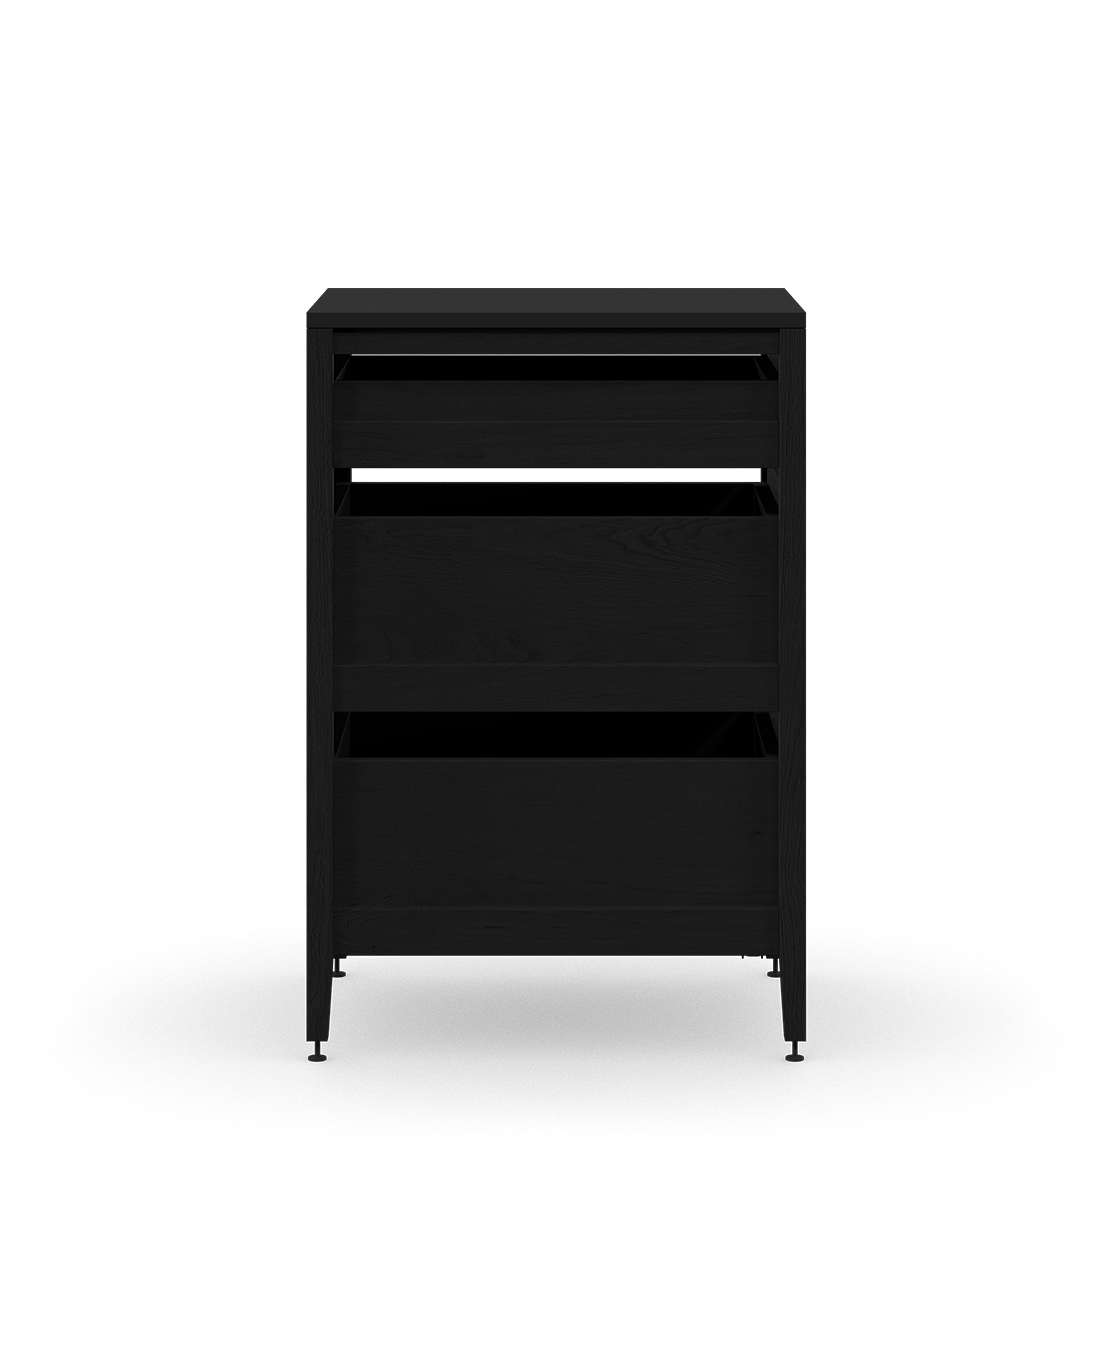 coquo radix midnight black stained oak solid wood modular 3 drawers base kitchen cabinet 15 inch C1-C-15TB-3002-BK